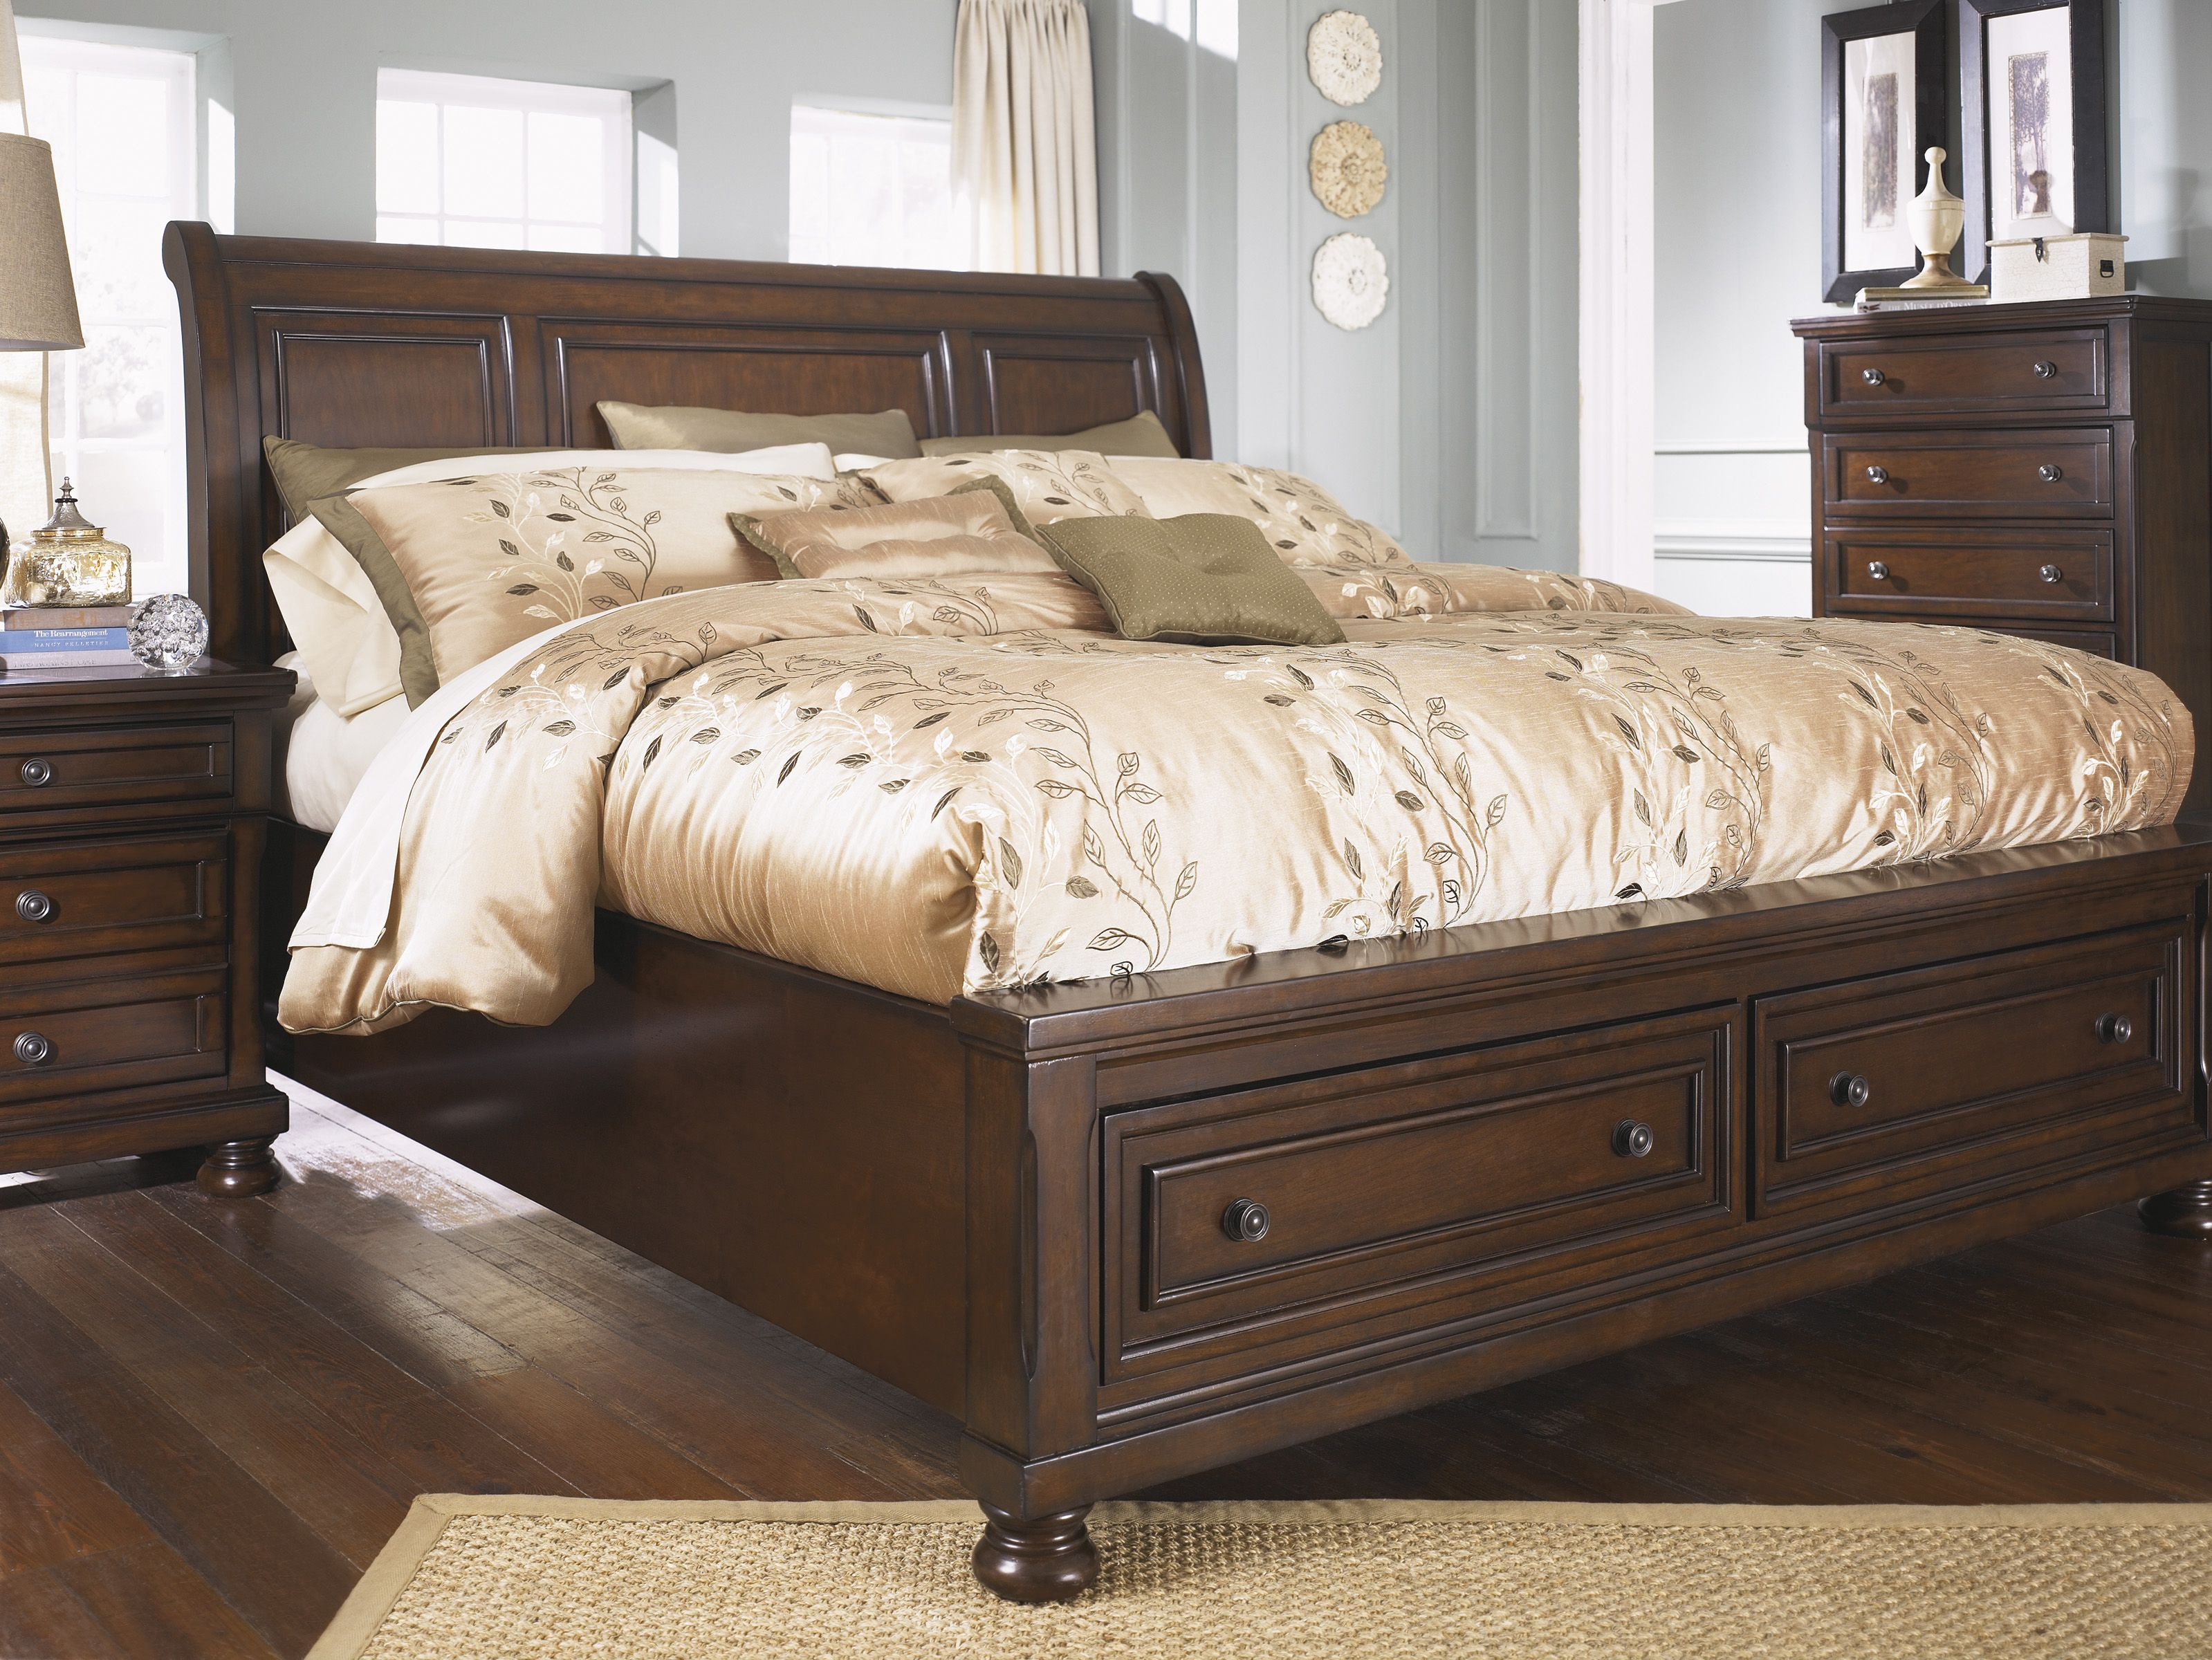 King Size Bed Frame Ashley Furniture Modrox